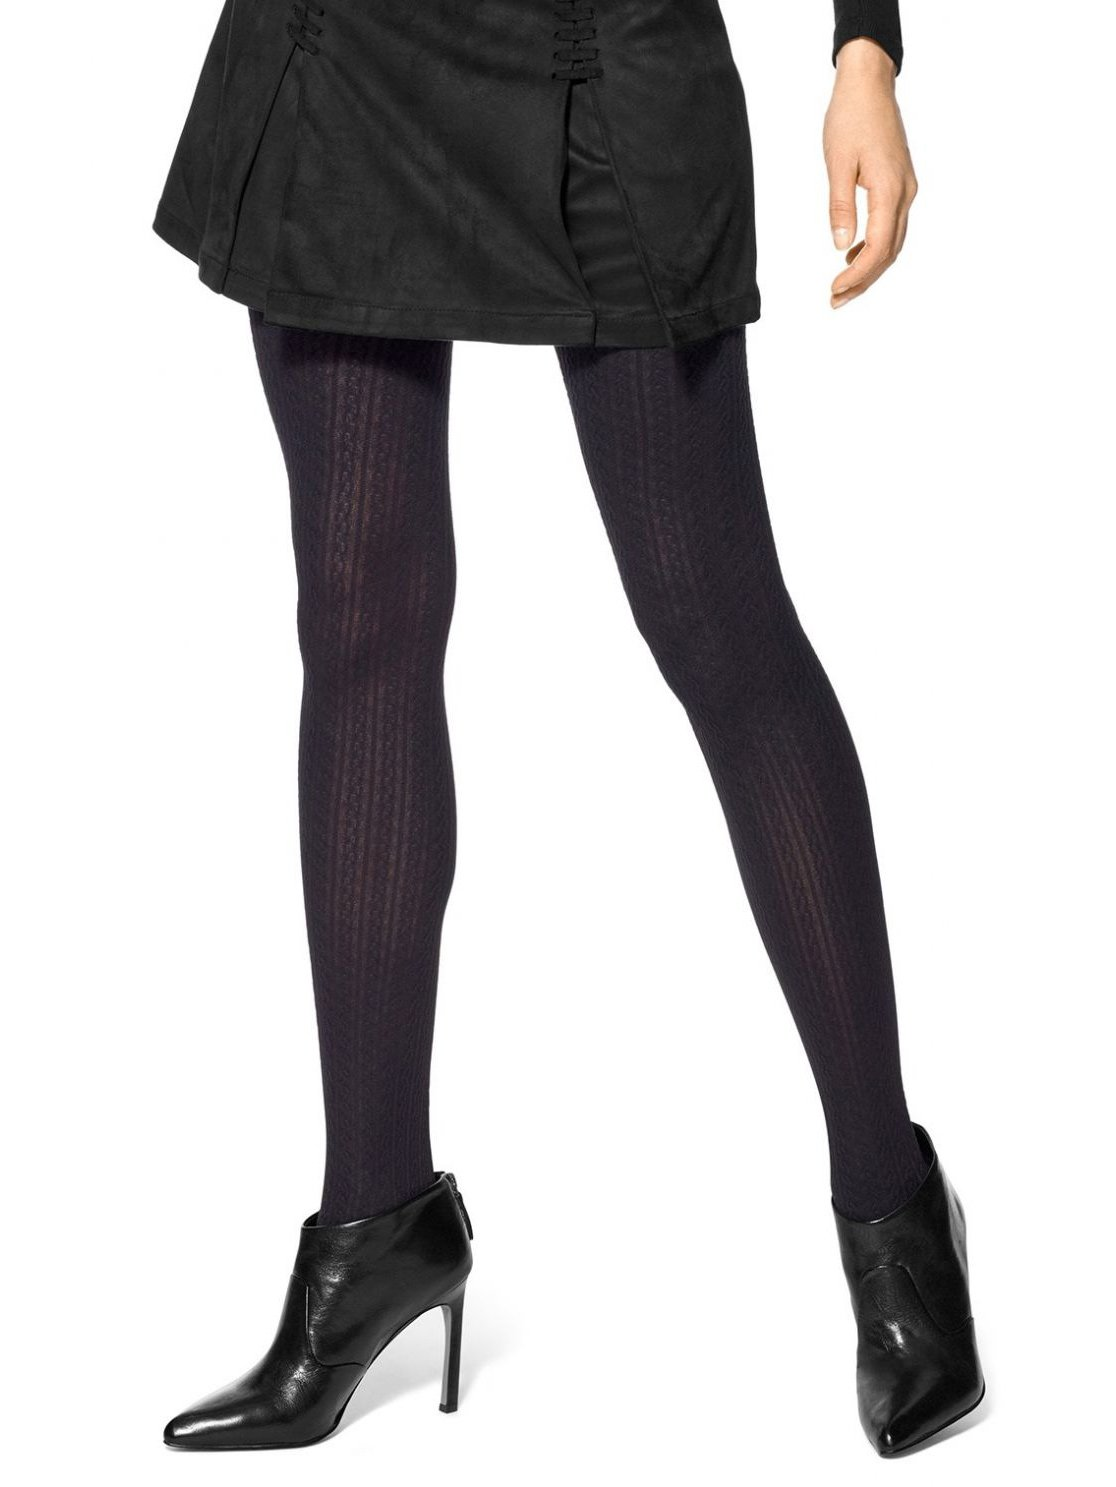 Hue Women's Cable Control Top Tights, Black, S/M